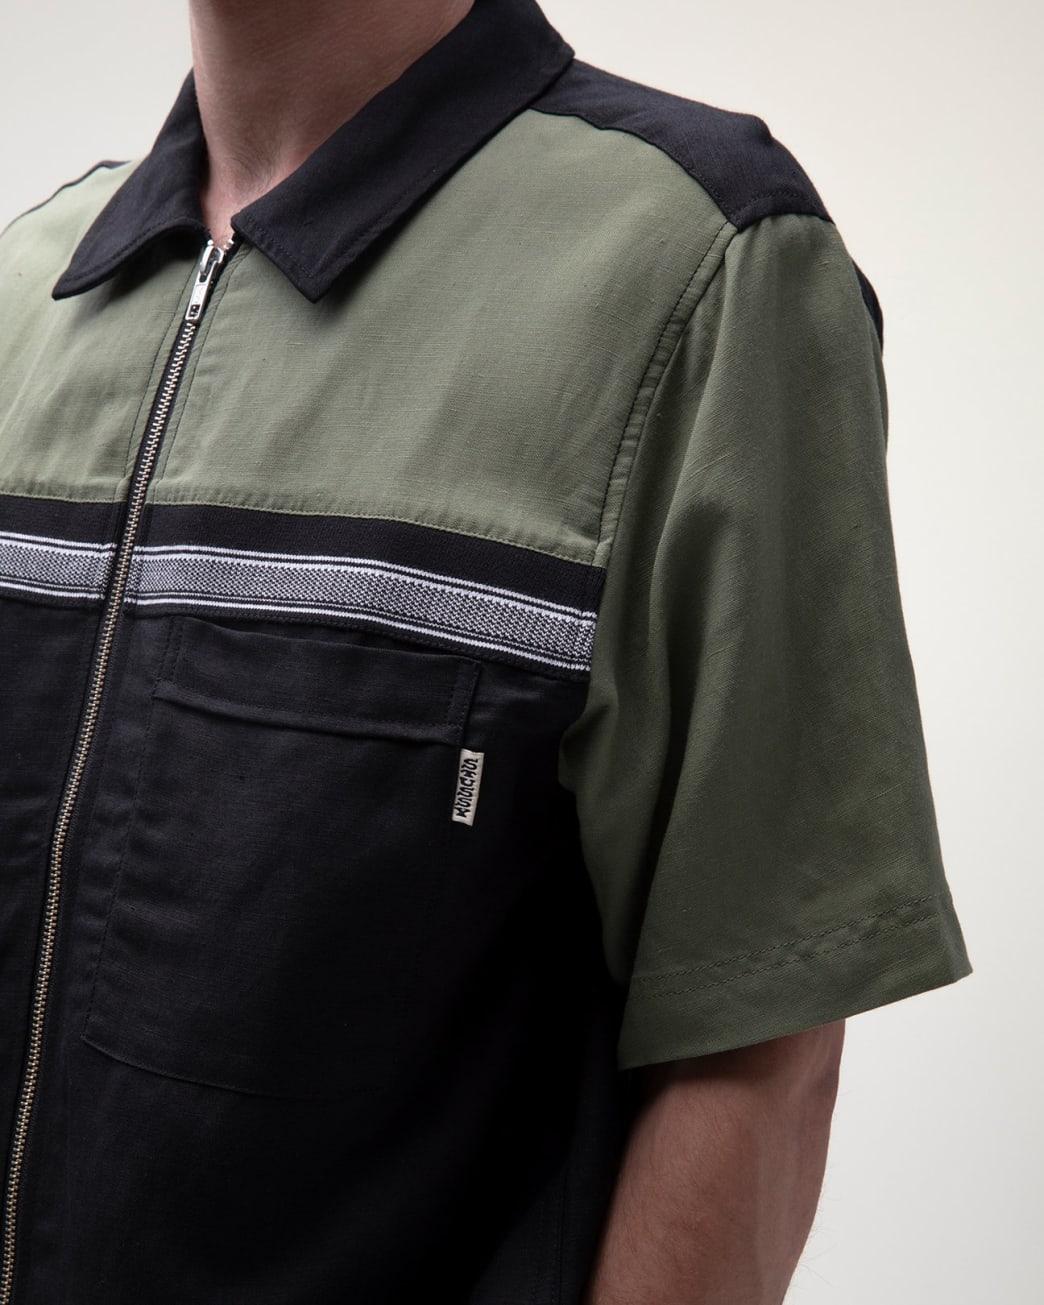 Stussy - Color Block Zip Work Shirt - Olive | Shirt by Stussy 3